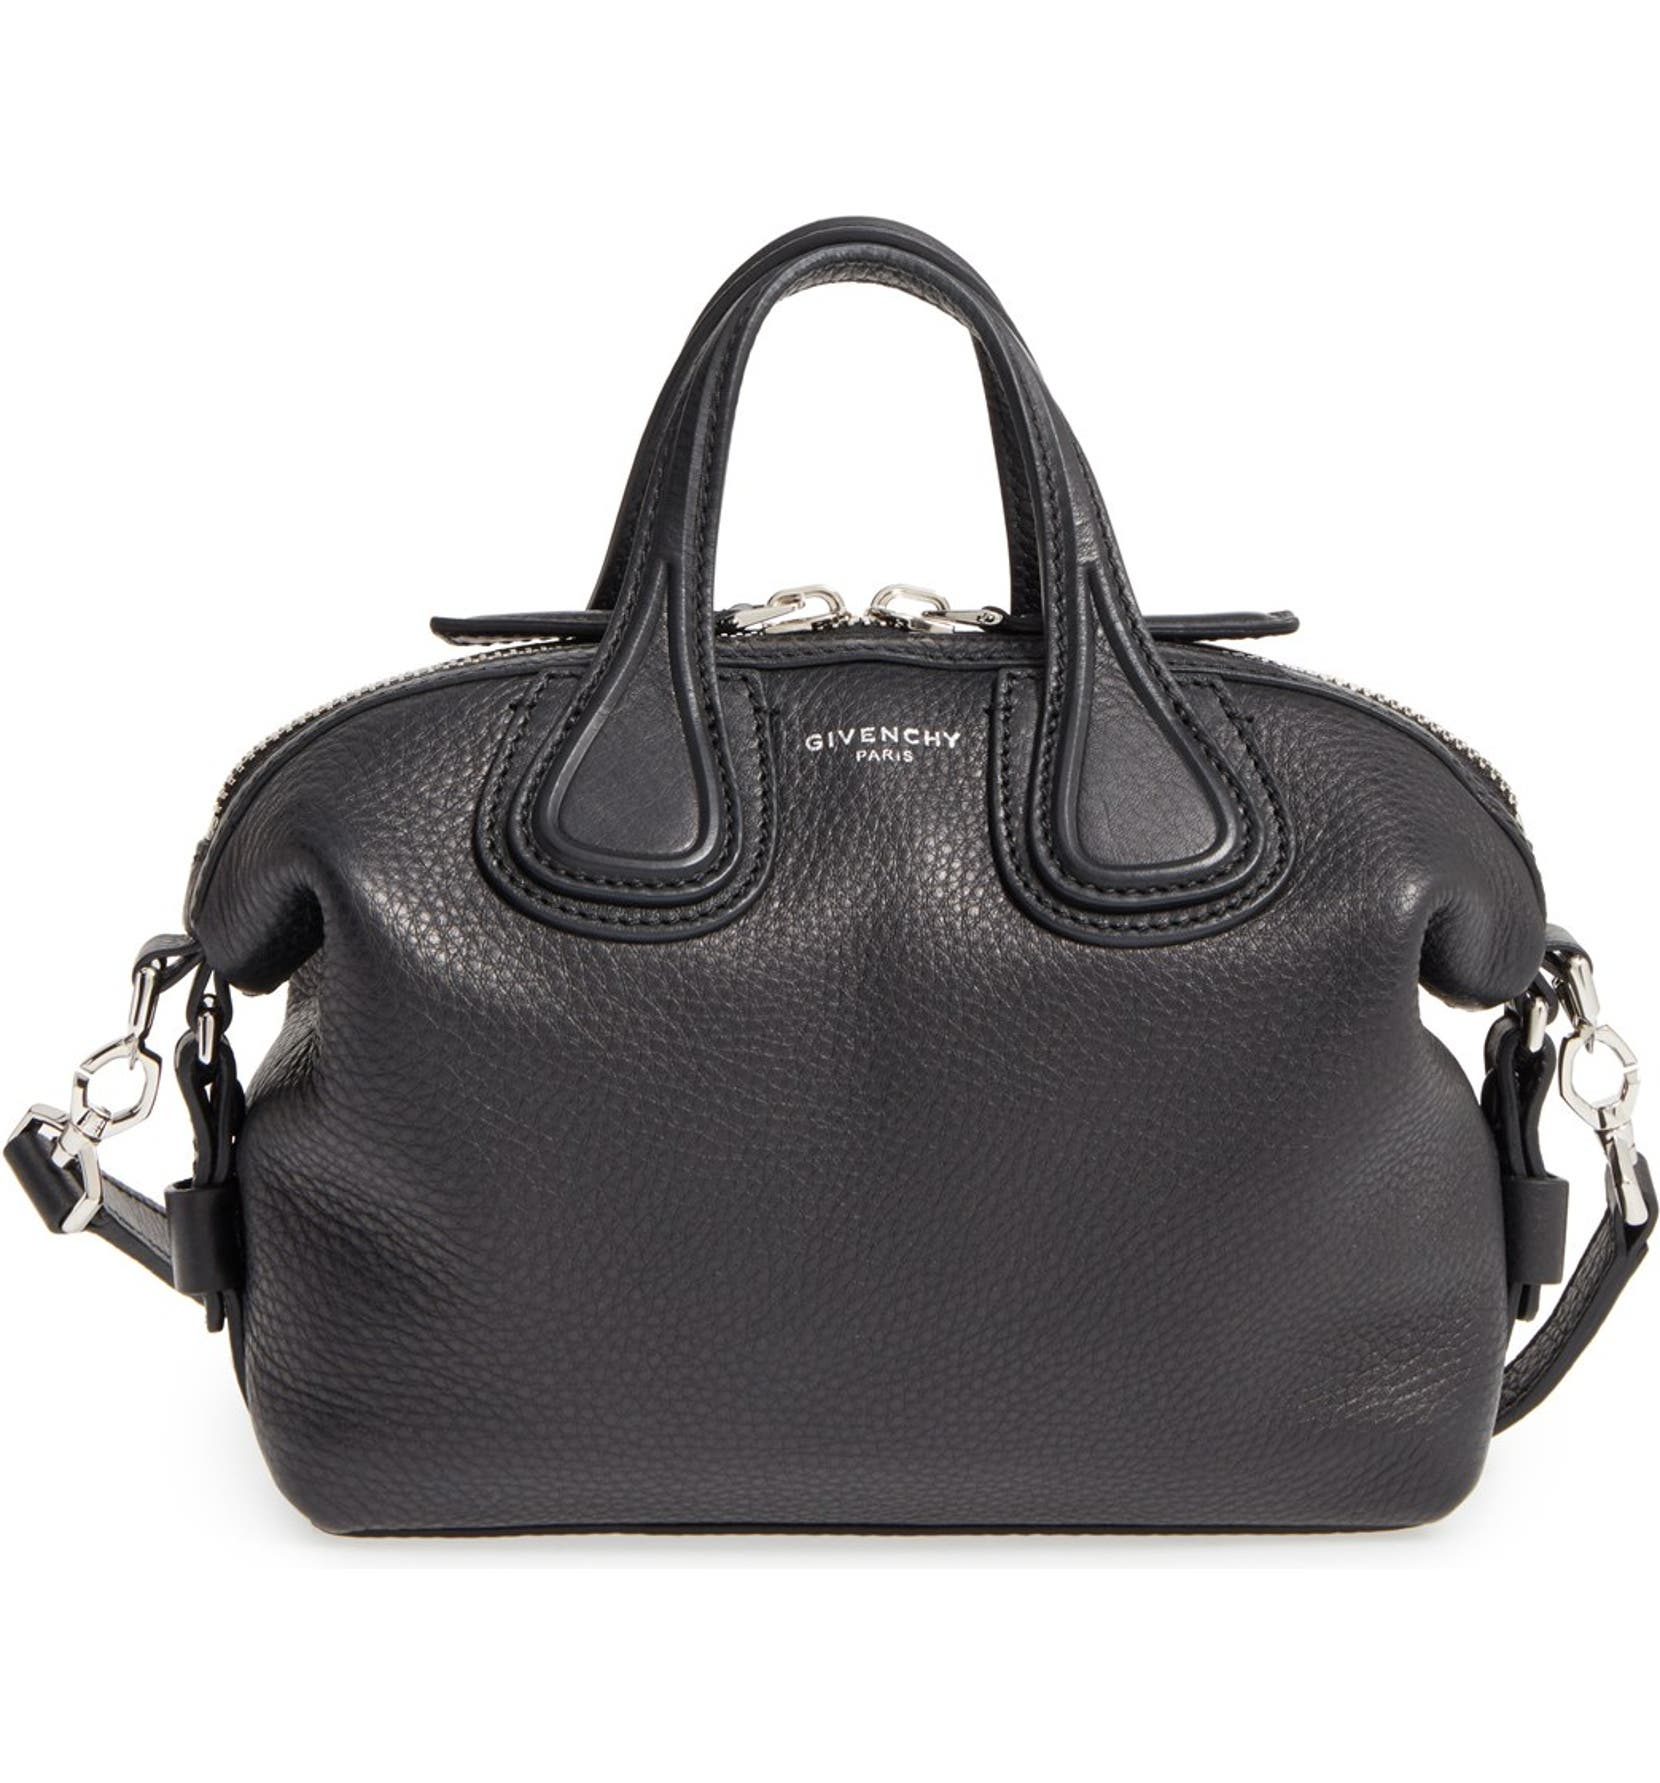 3531890944f7 Givenchy Micro Nightingale Leather Satchel